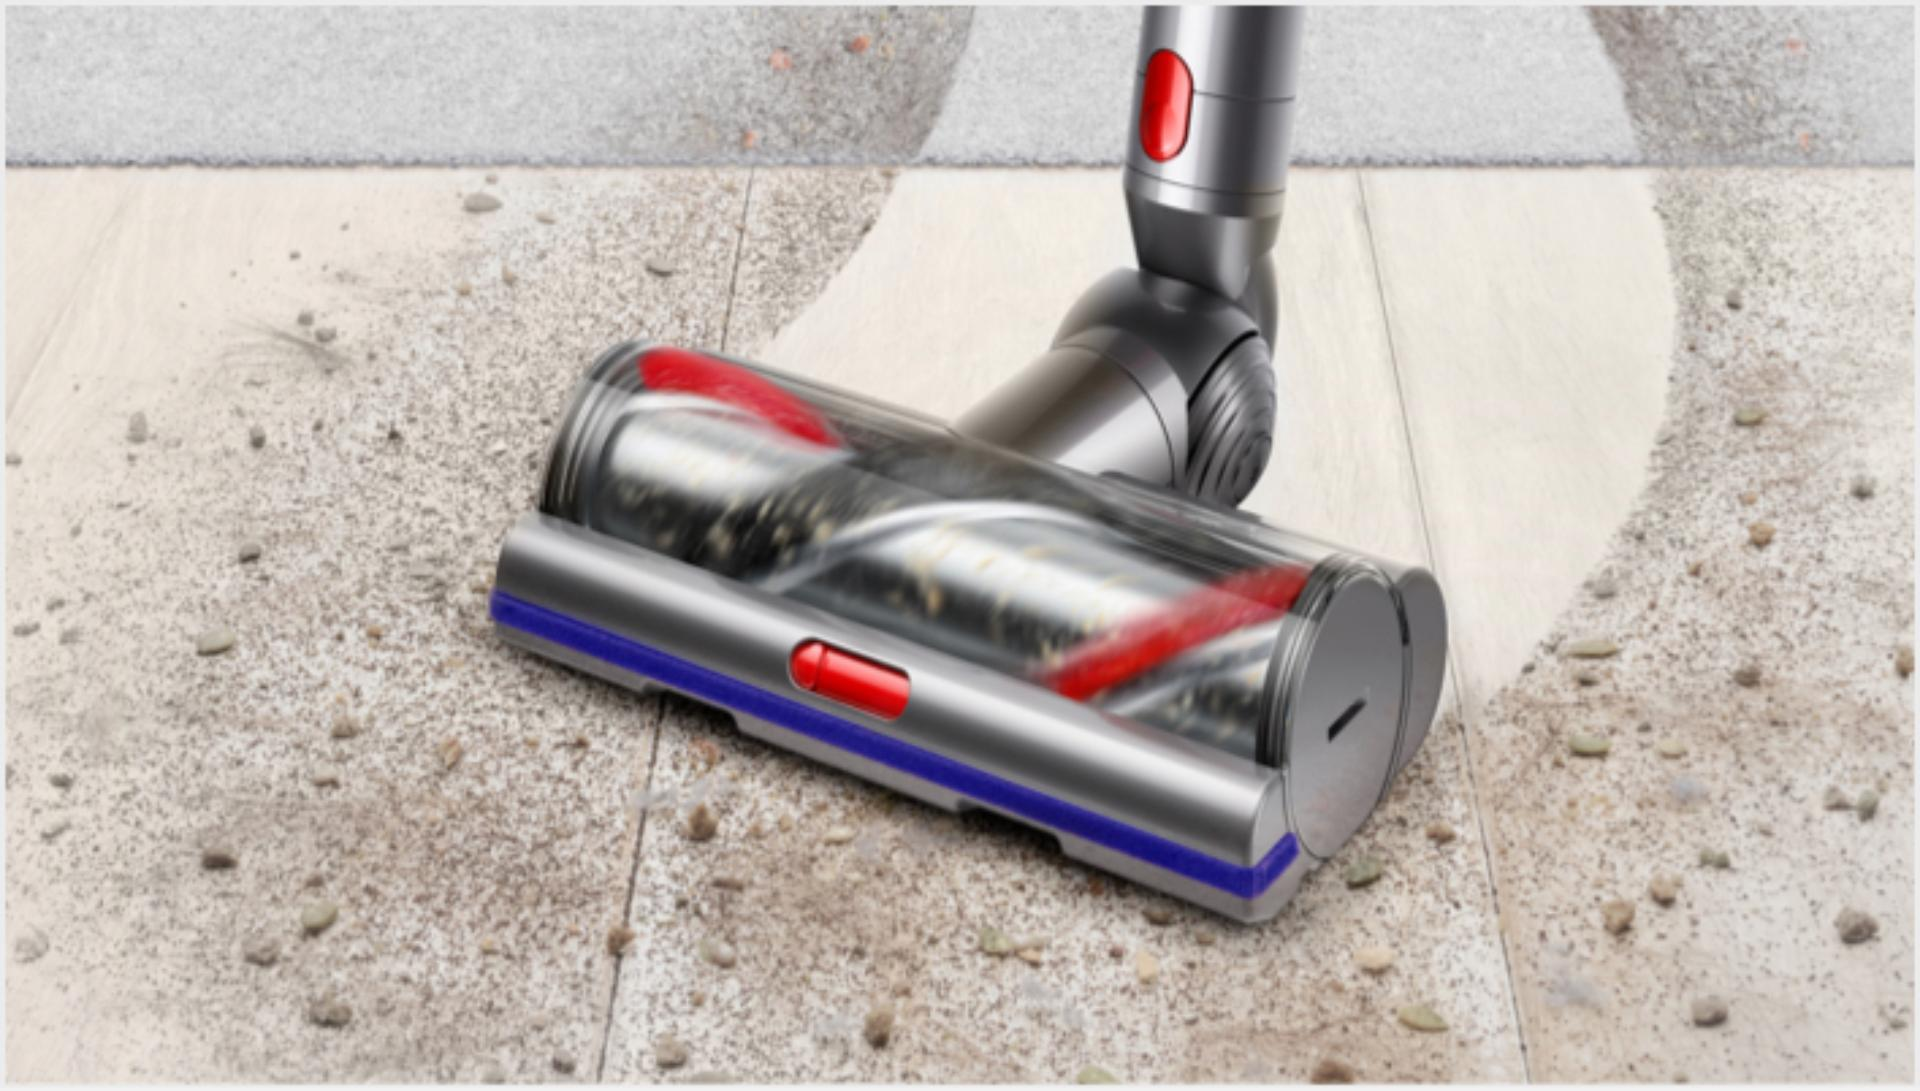 High Torque cleaner head cleaning different floor surfaces